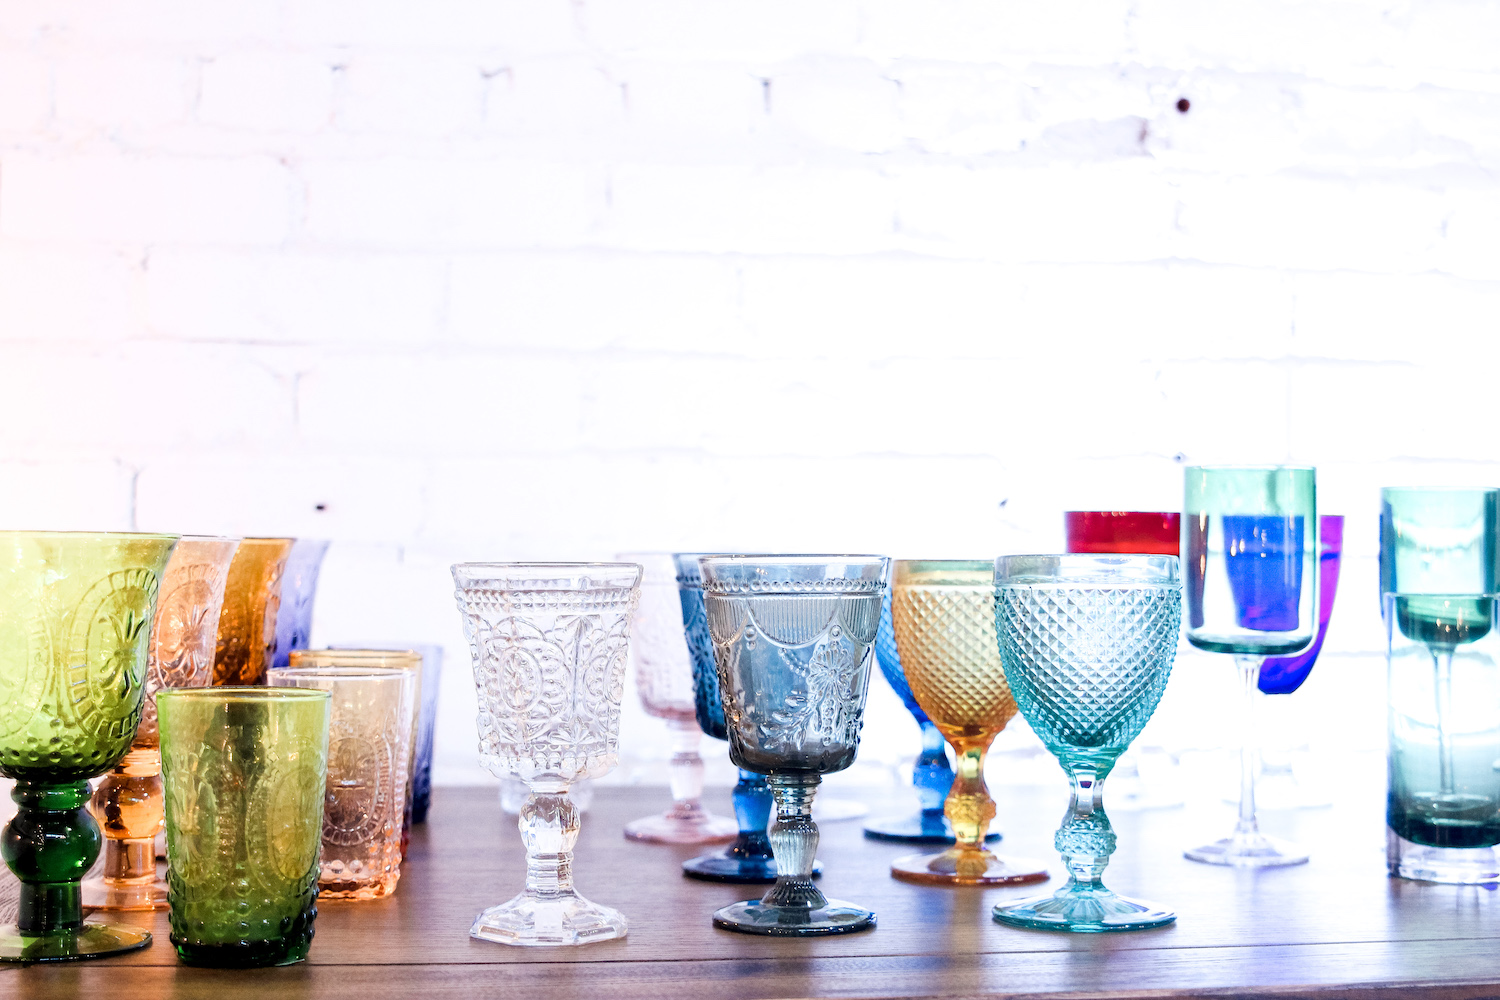 Various glass goblets on a table.